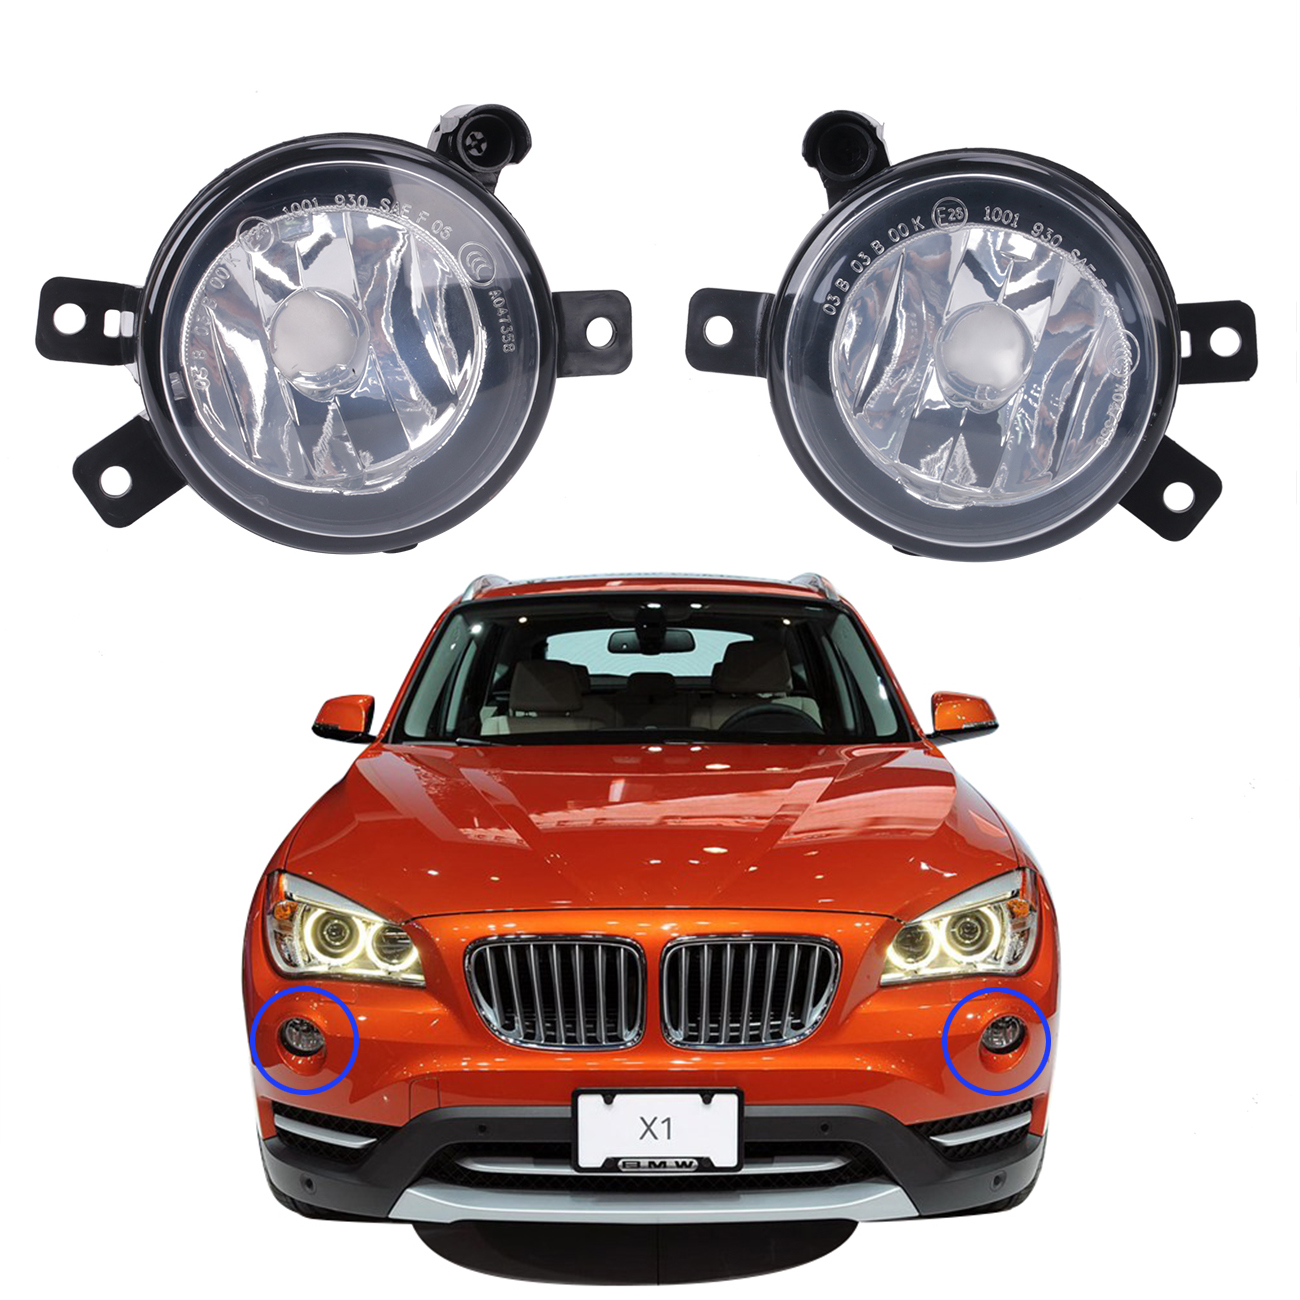 Car Front Fog Light For BMW X1 E84 Sport Model 2010 2011 2012 2013 2014 2015 Left+Right Clear Fog Lamp Foglamp Housing #W089 for vw golf 6 gti 2009 2010 2011 jetta 6 gli 2011 2012 2013 2014 new front right halogen new fog lamp fog light car styling